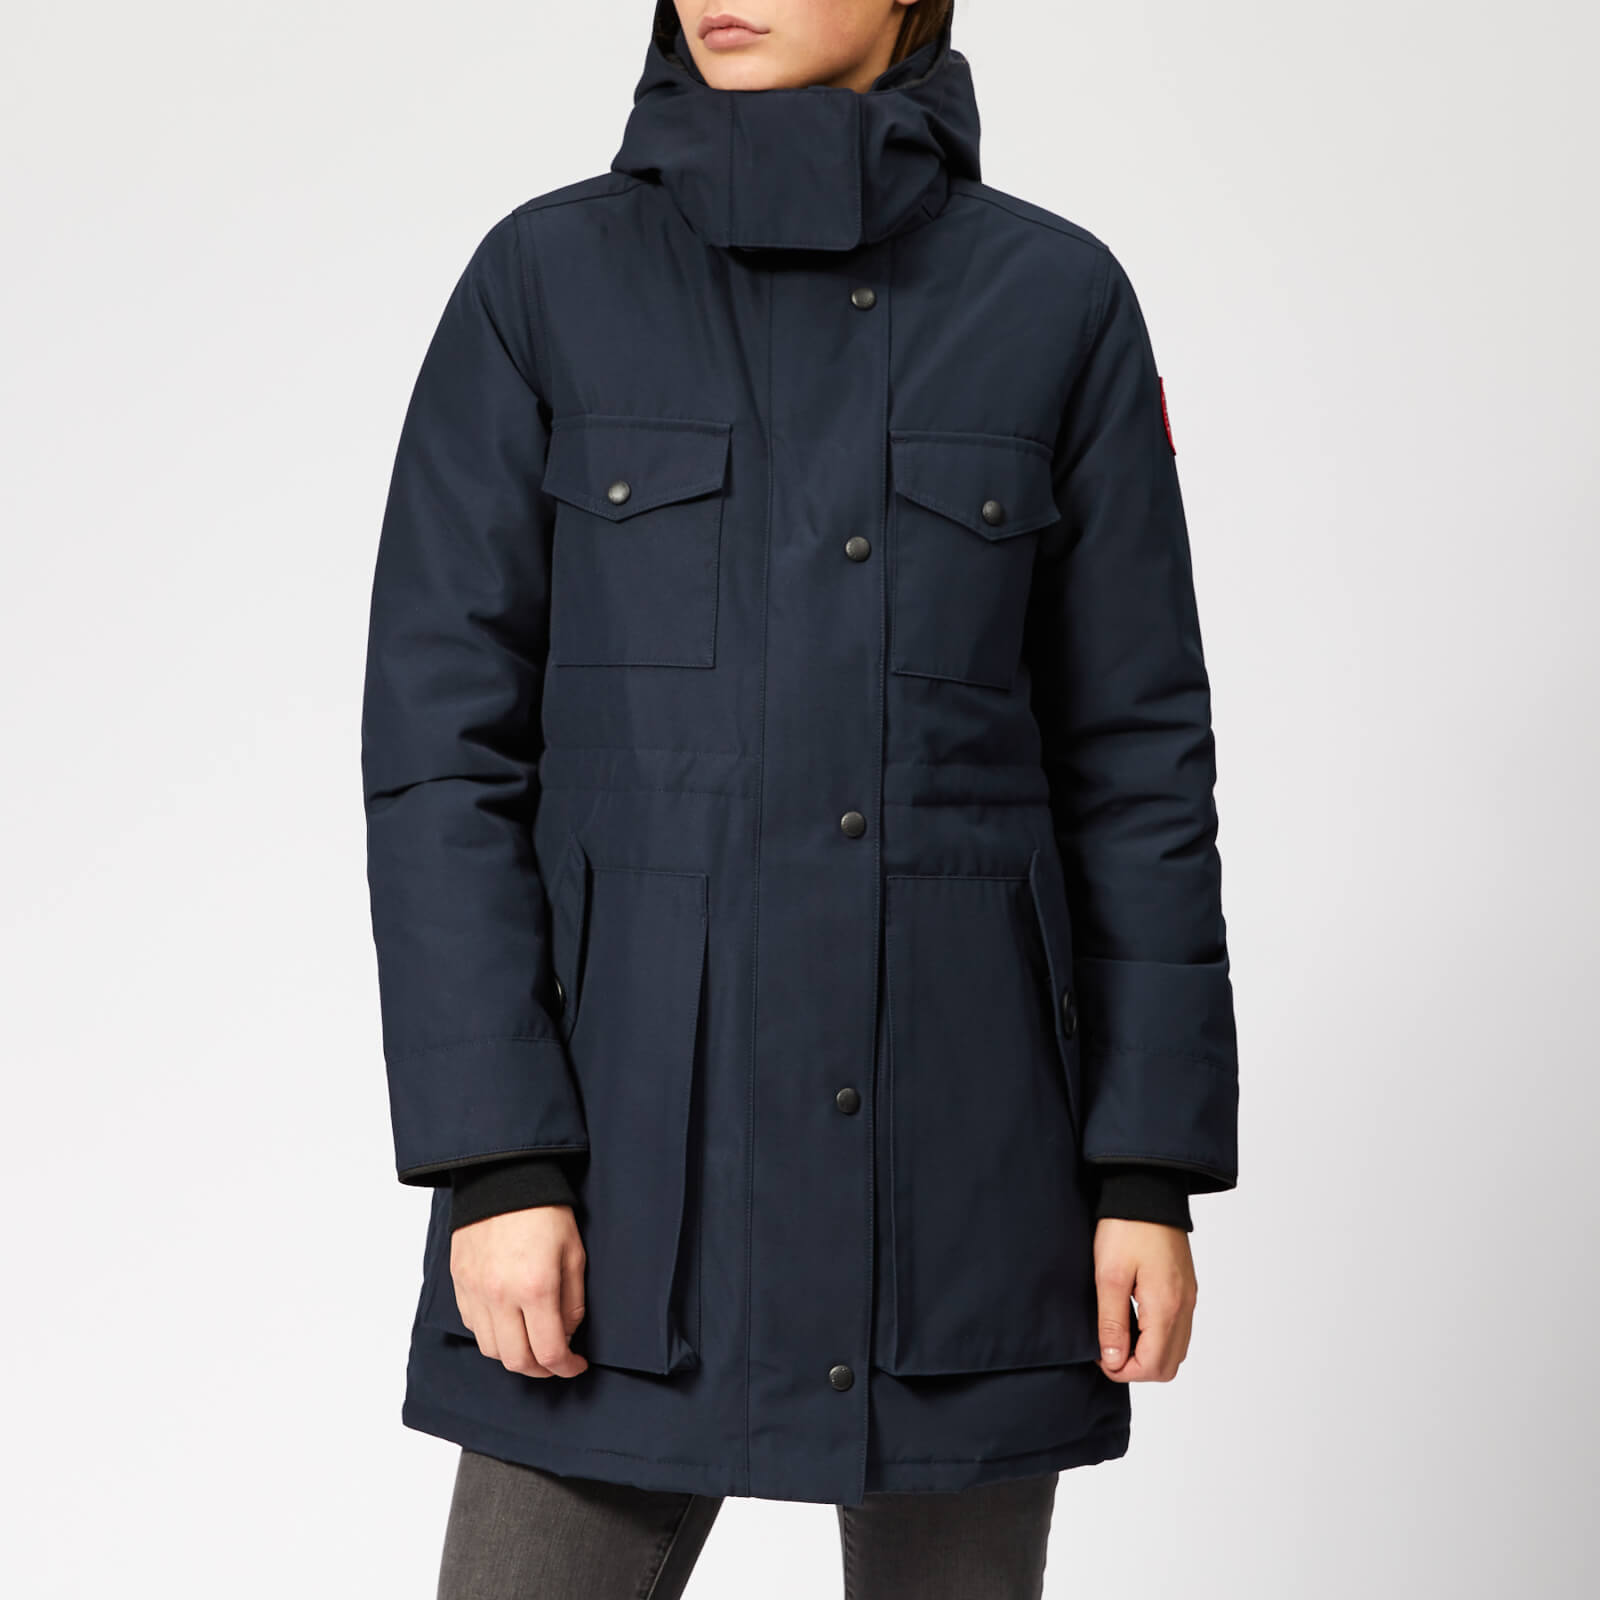 0372ba498c8 Canada Goose Women's Gabriola Parka - Admiral Blue - Free UK Delivery over  £50